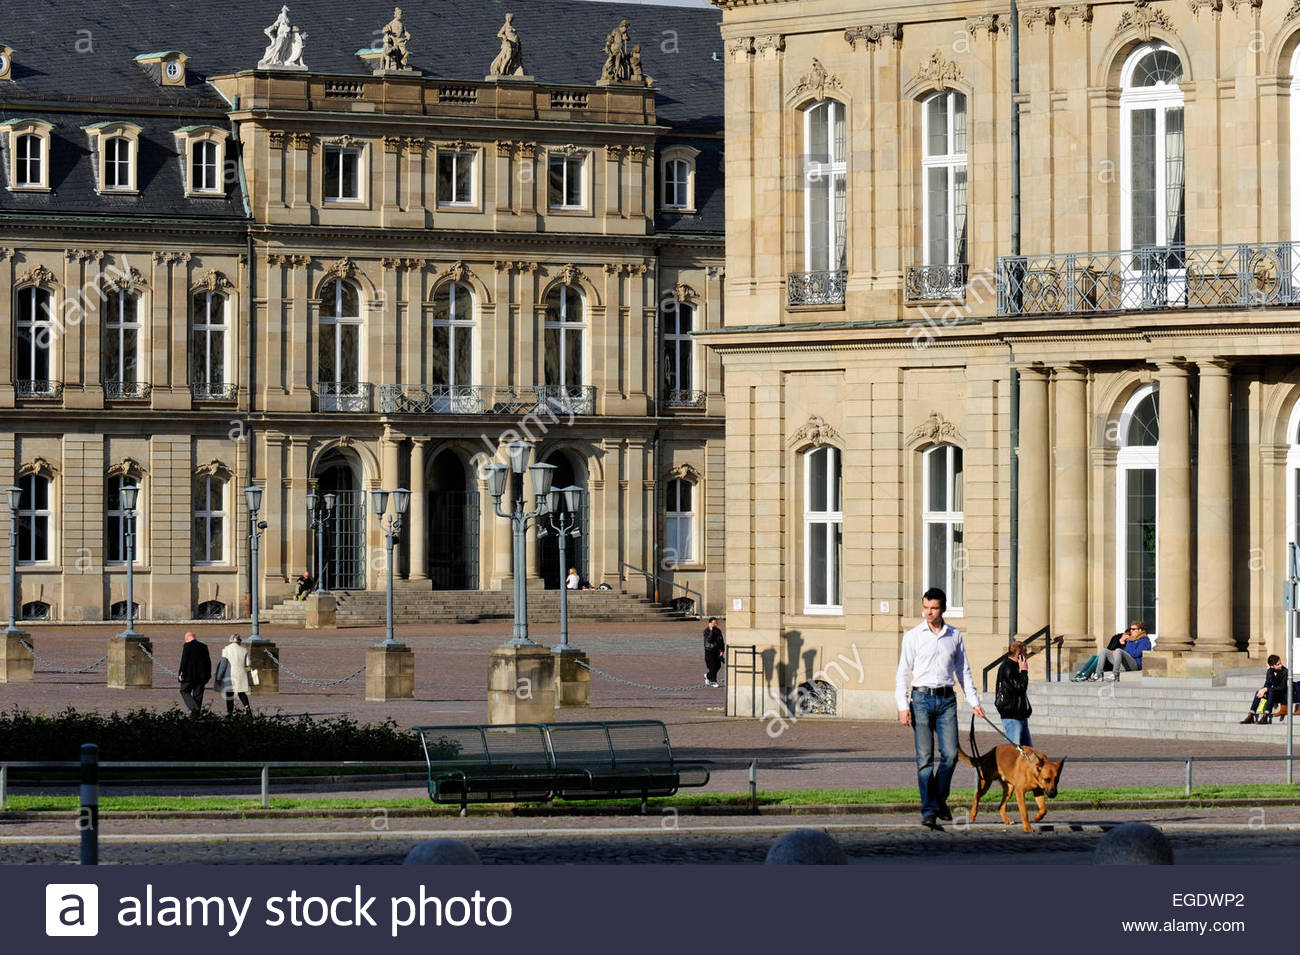 stuttgart palace square stock photos stuttgart palace square stock images alamy. Black Bedroom Furniture Sets. Home Design Ideas